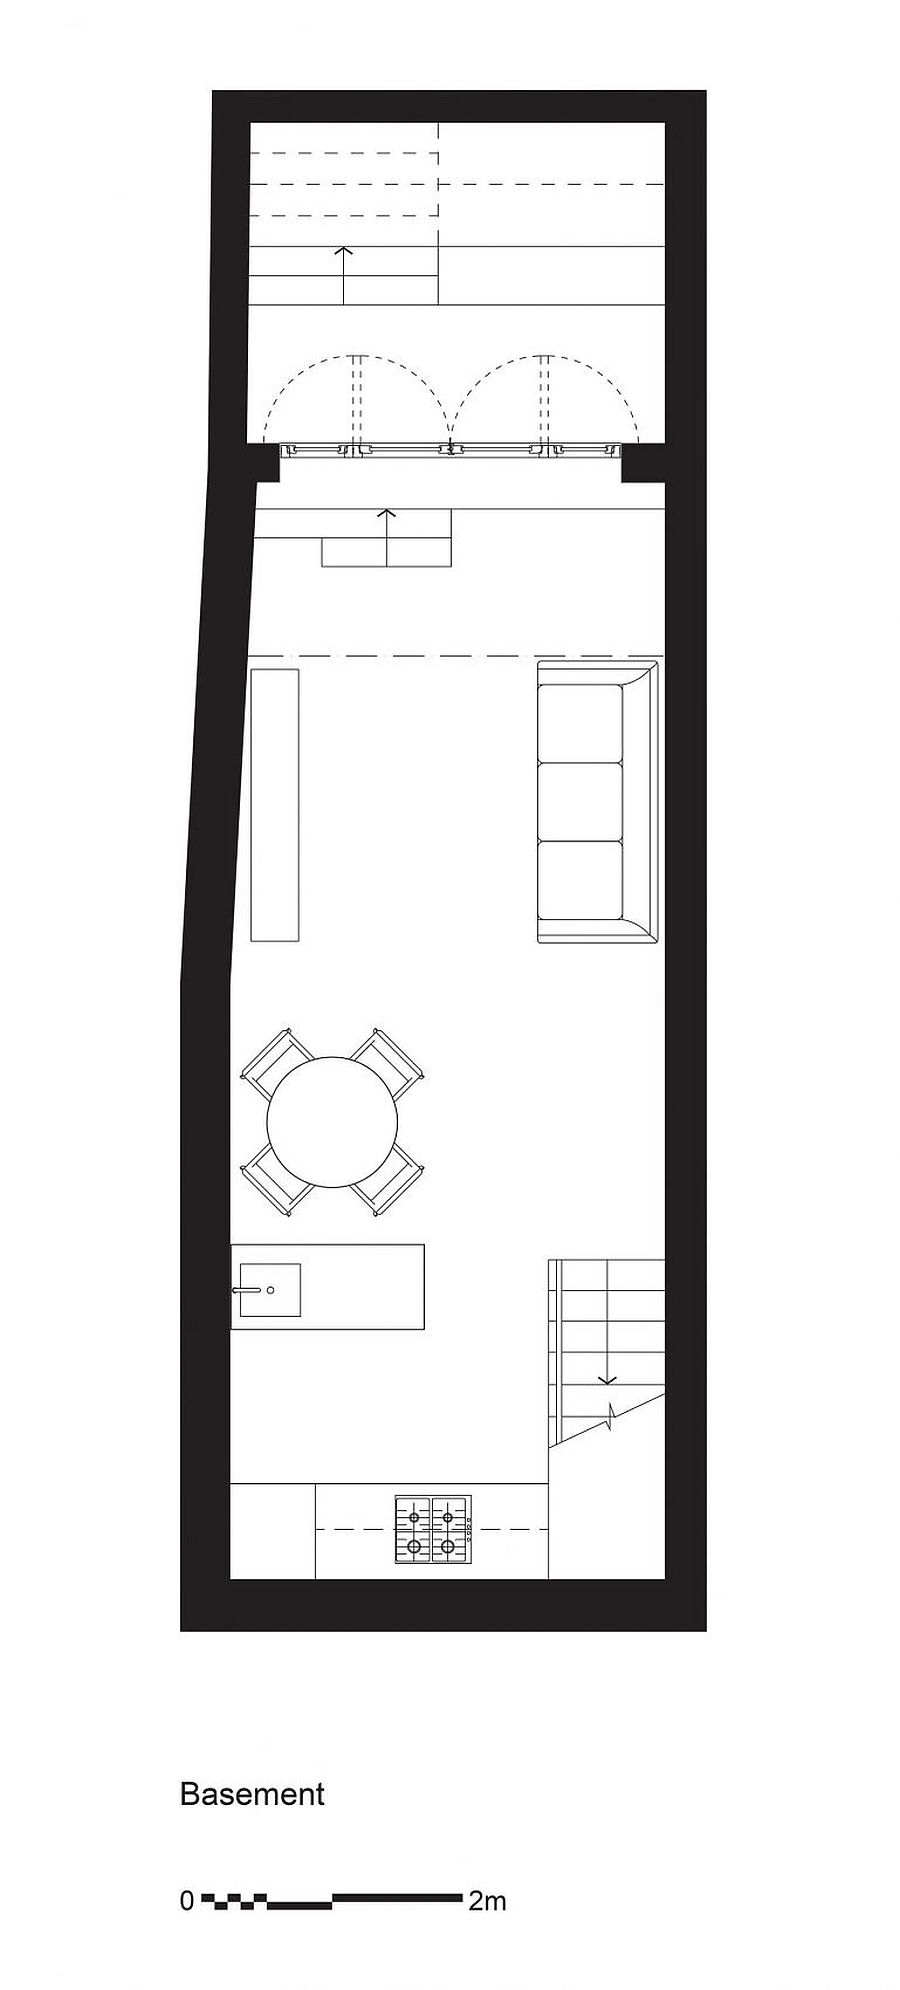 Floor plan of the basement level living, dining and kitchen areas